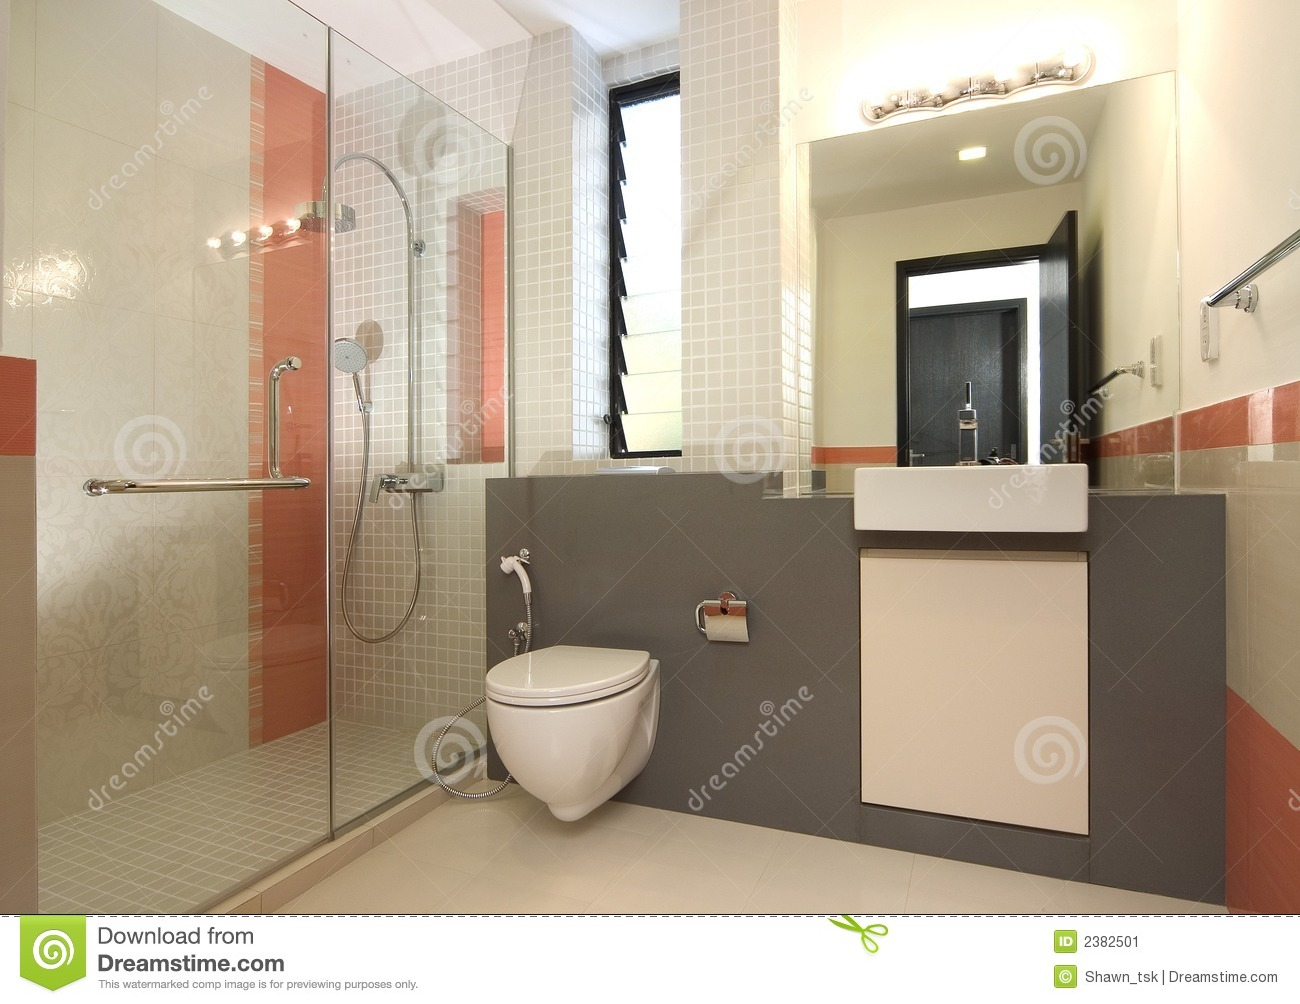 Interior design bathroom stock image image of light 2382501 - Interior bathroom design ...